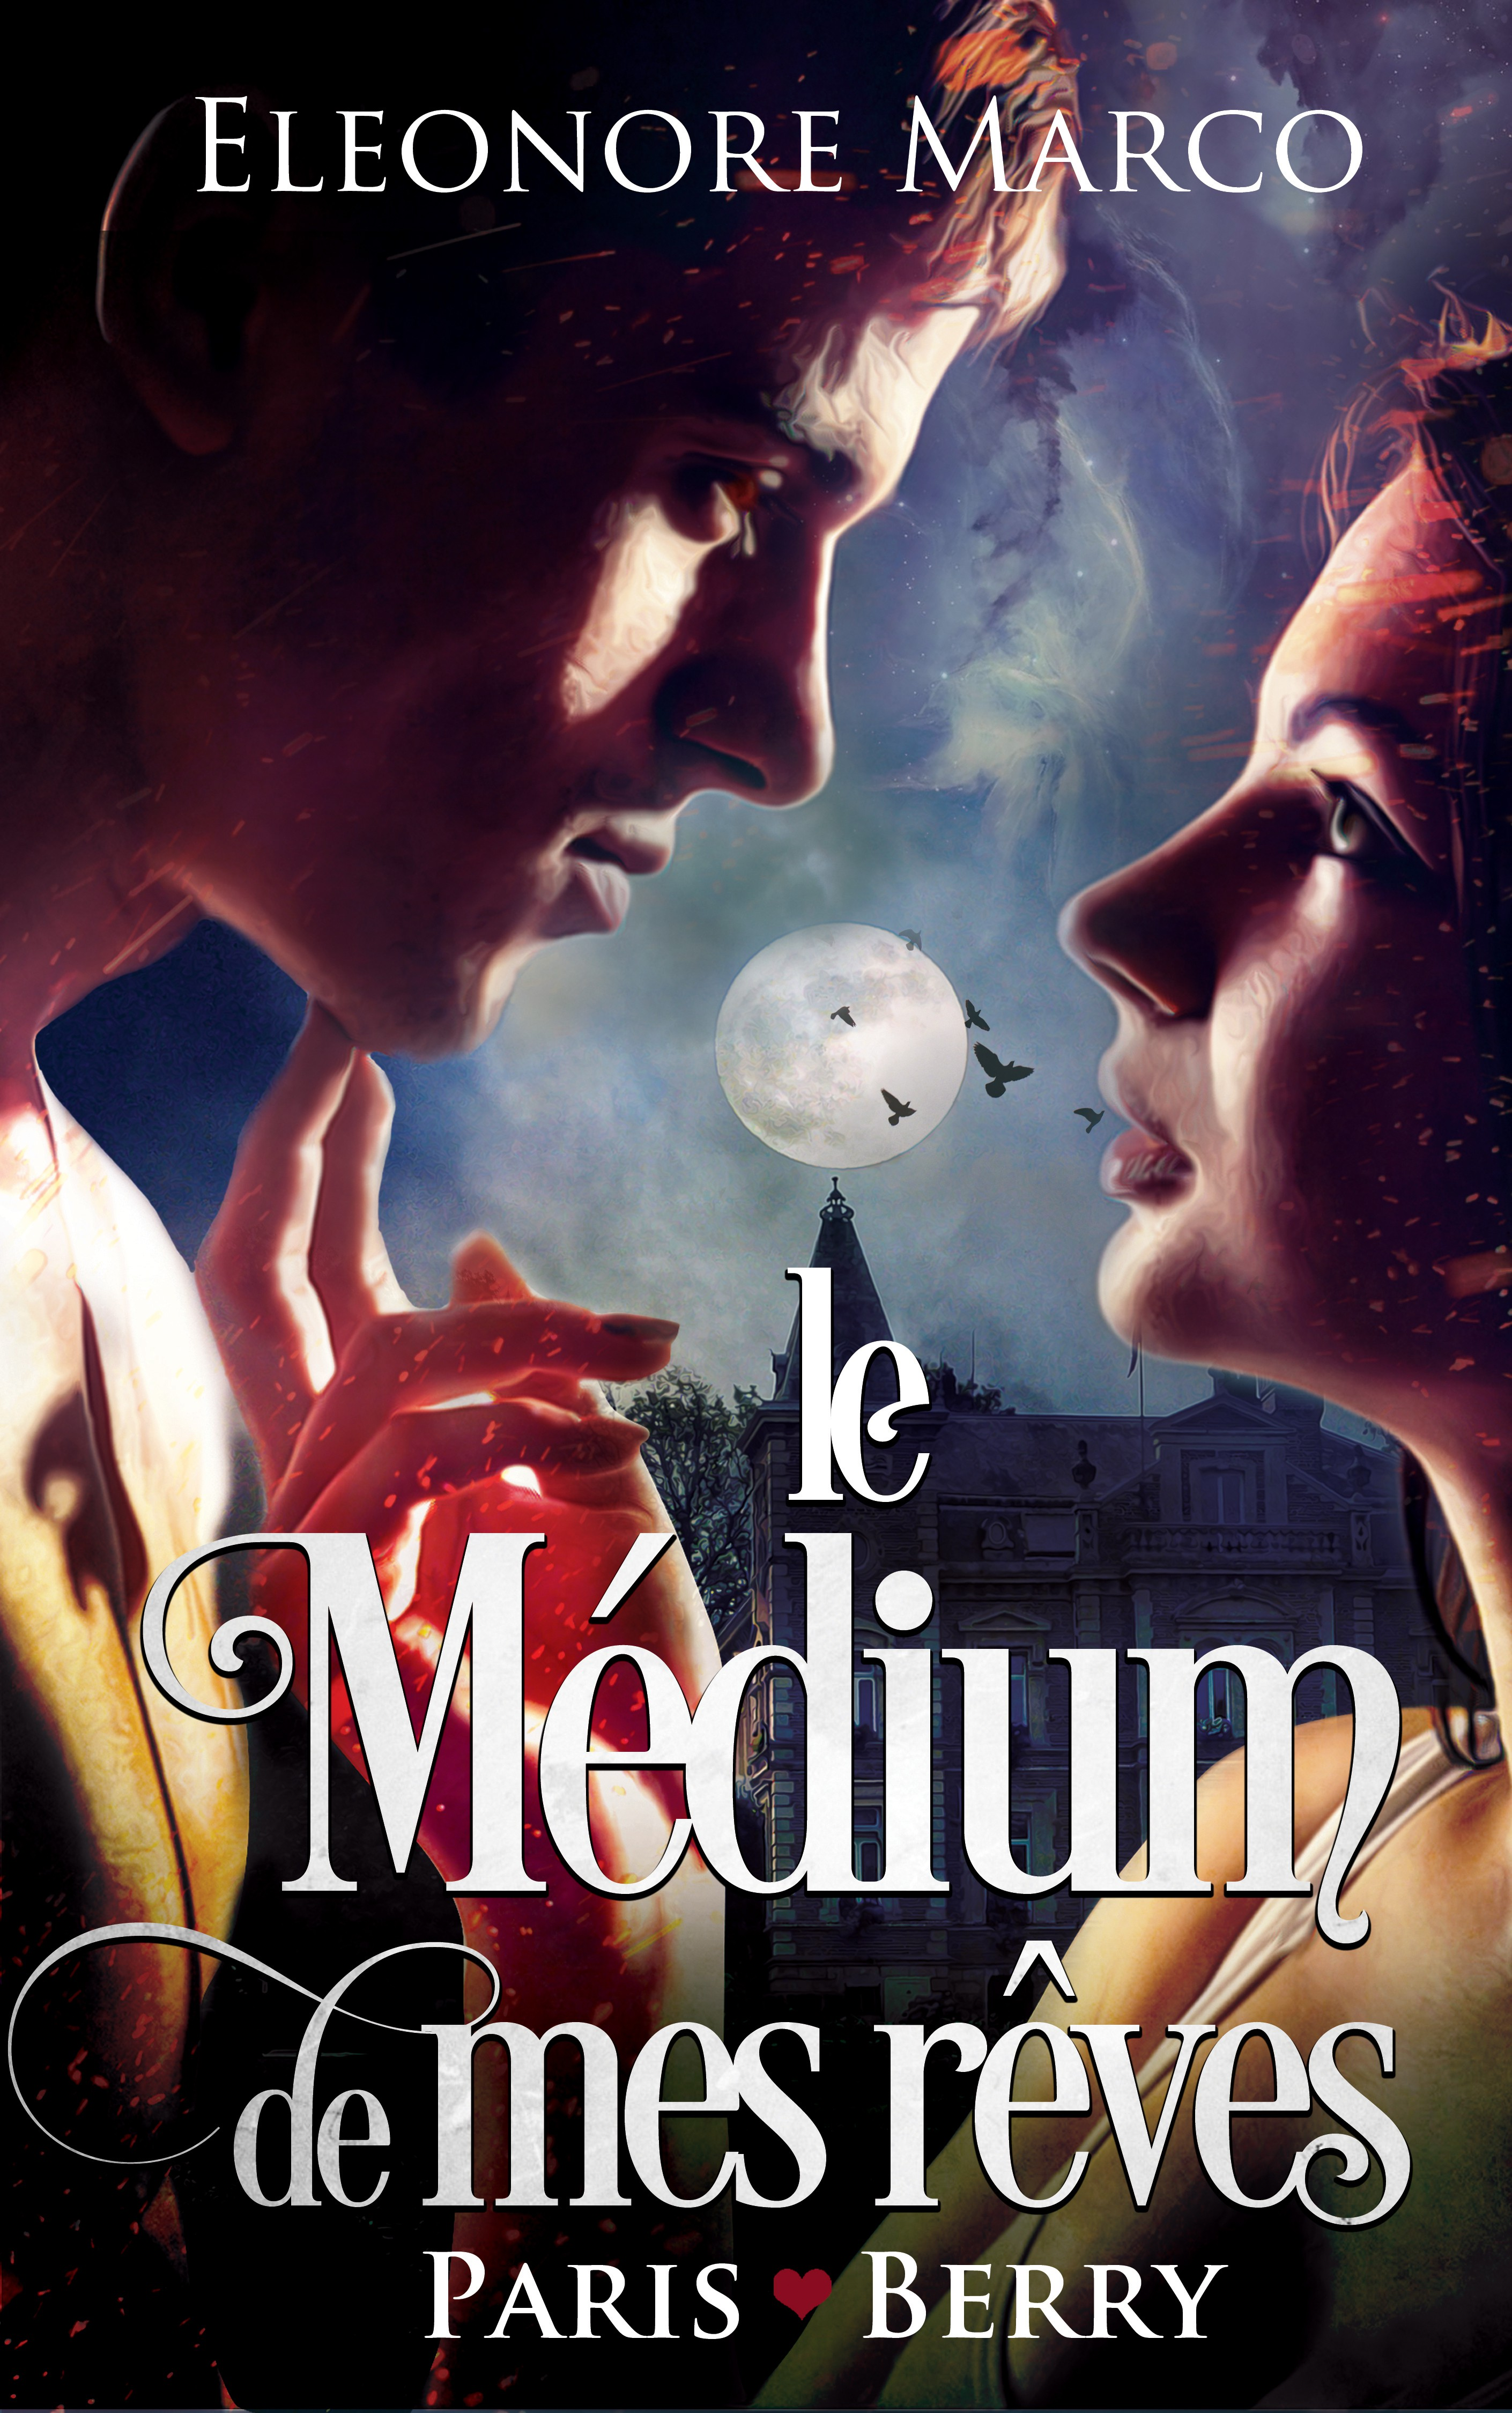 Sexy and mysterious cover for a paranormal romance : ghosts in a French castle !